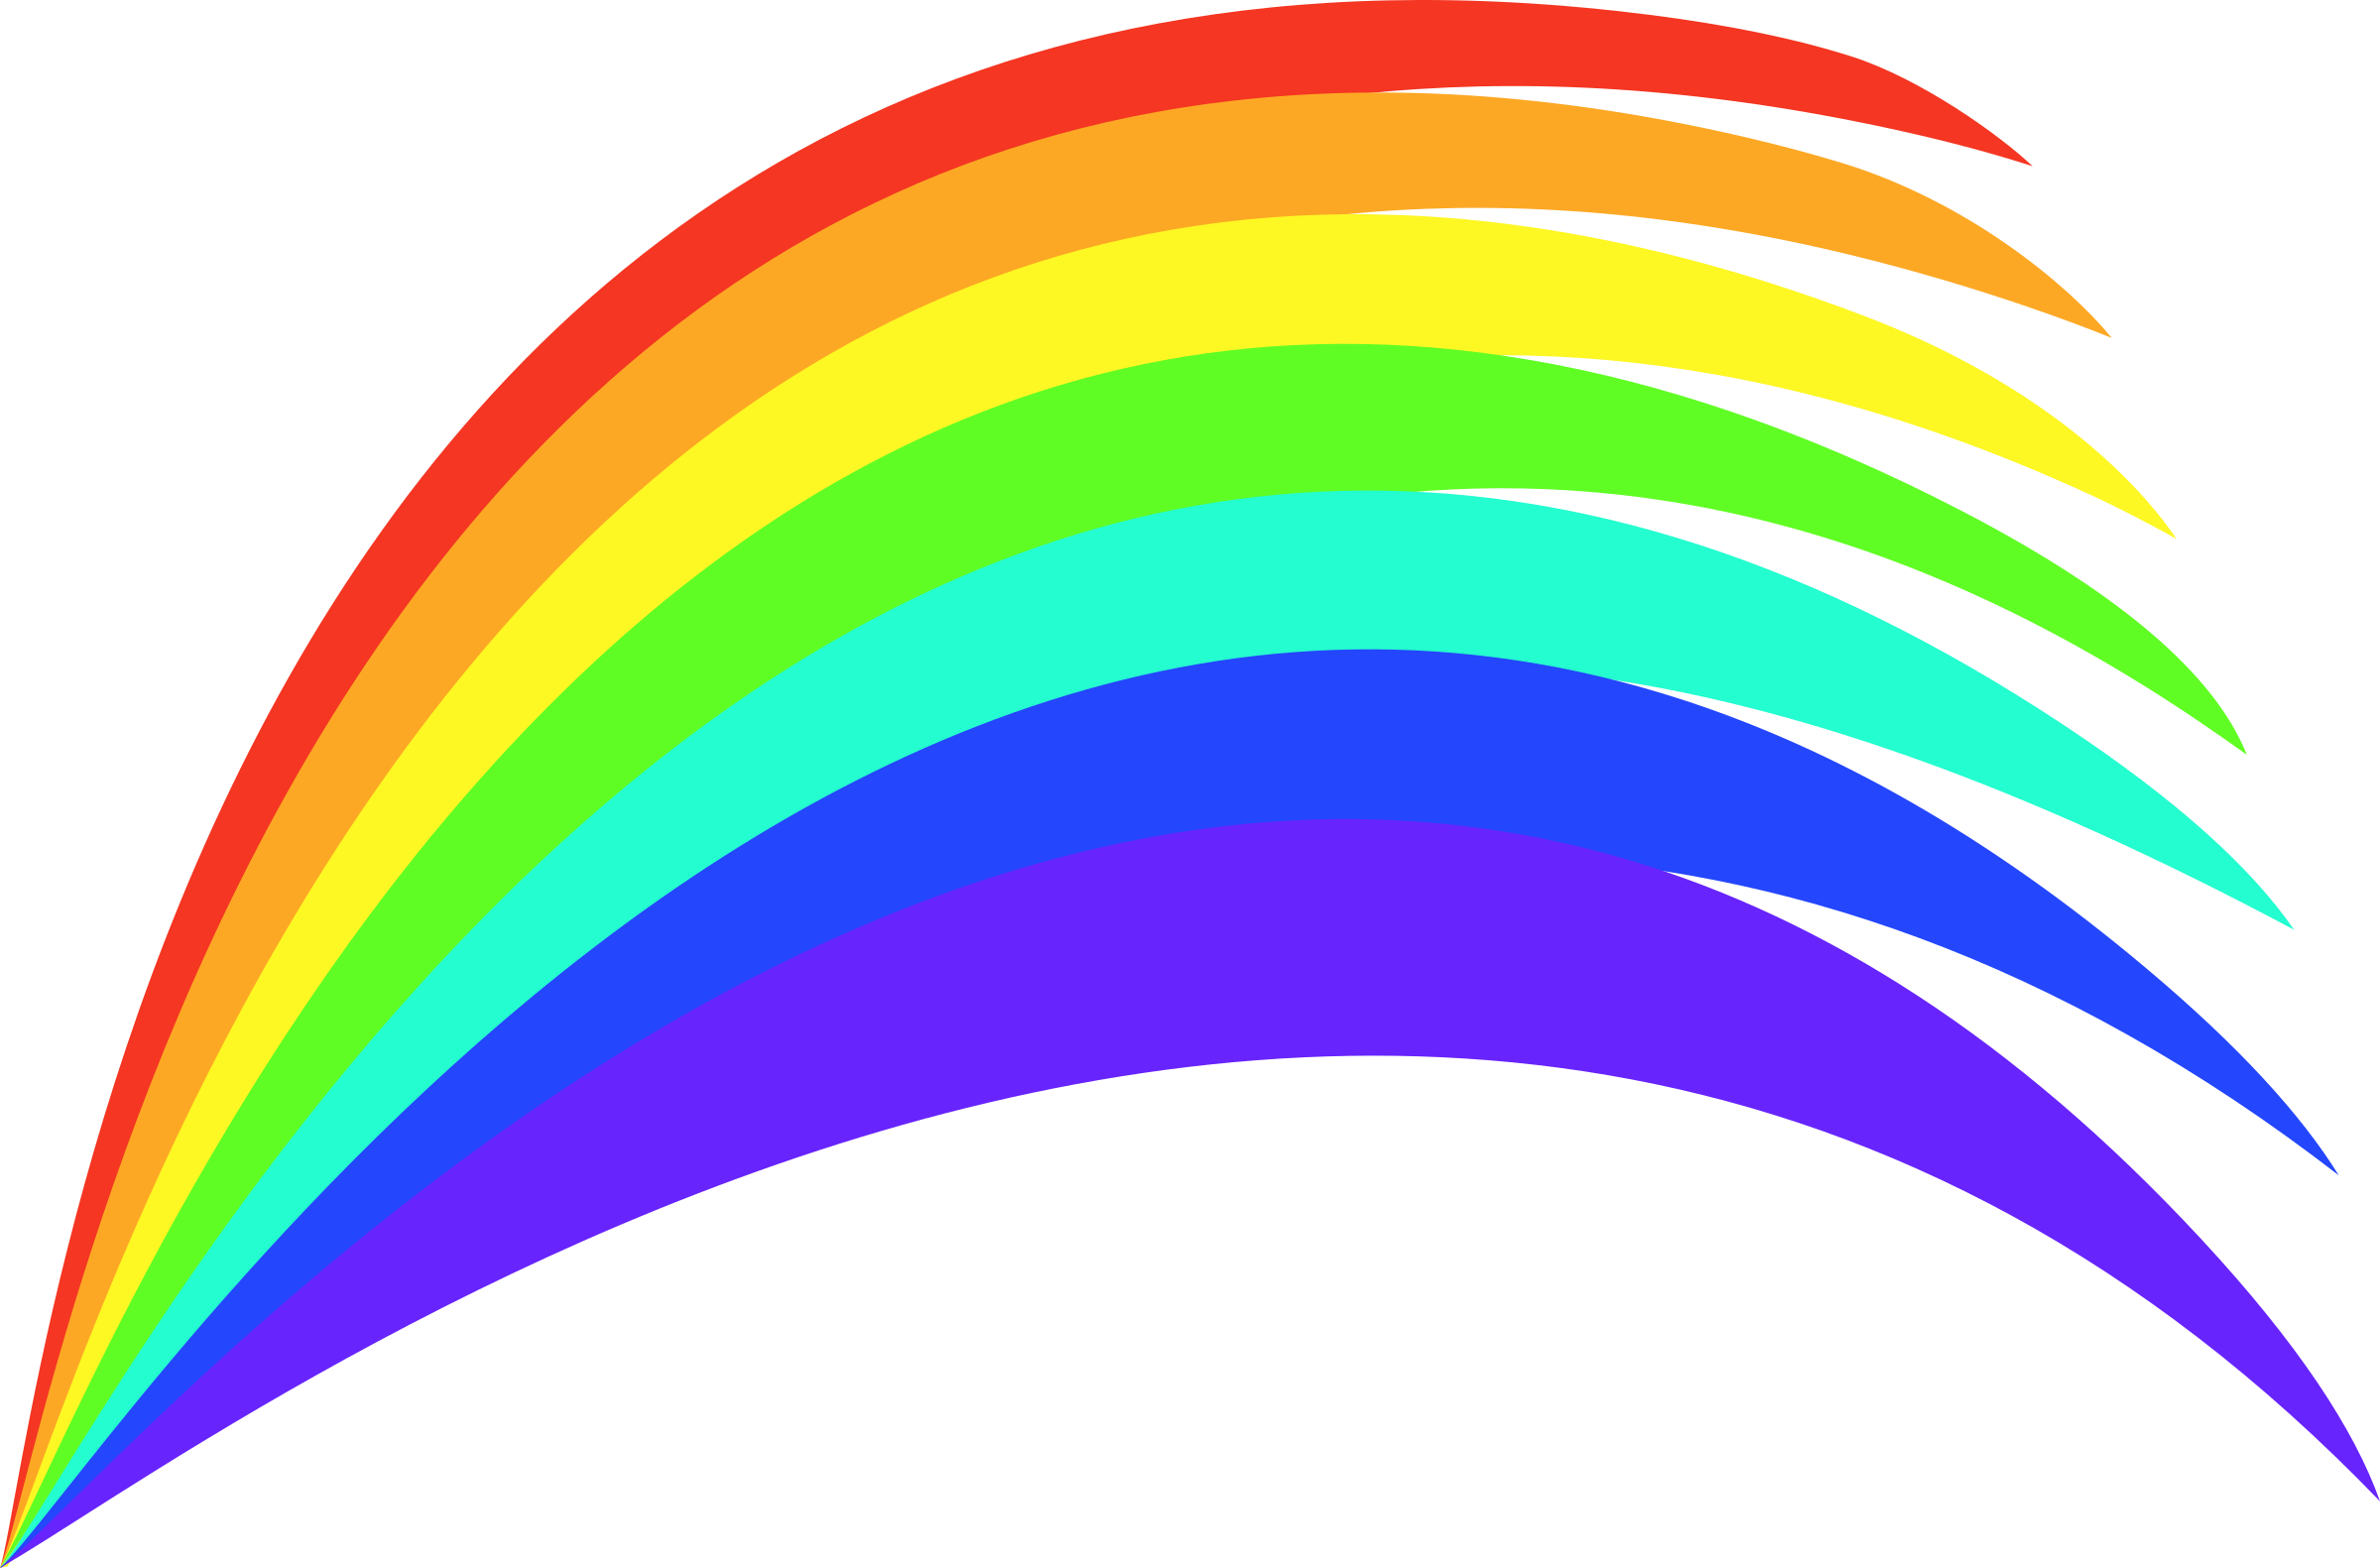 Big image png. Clipart rainbow fire